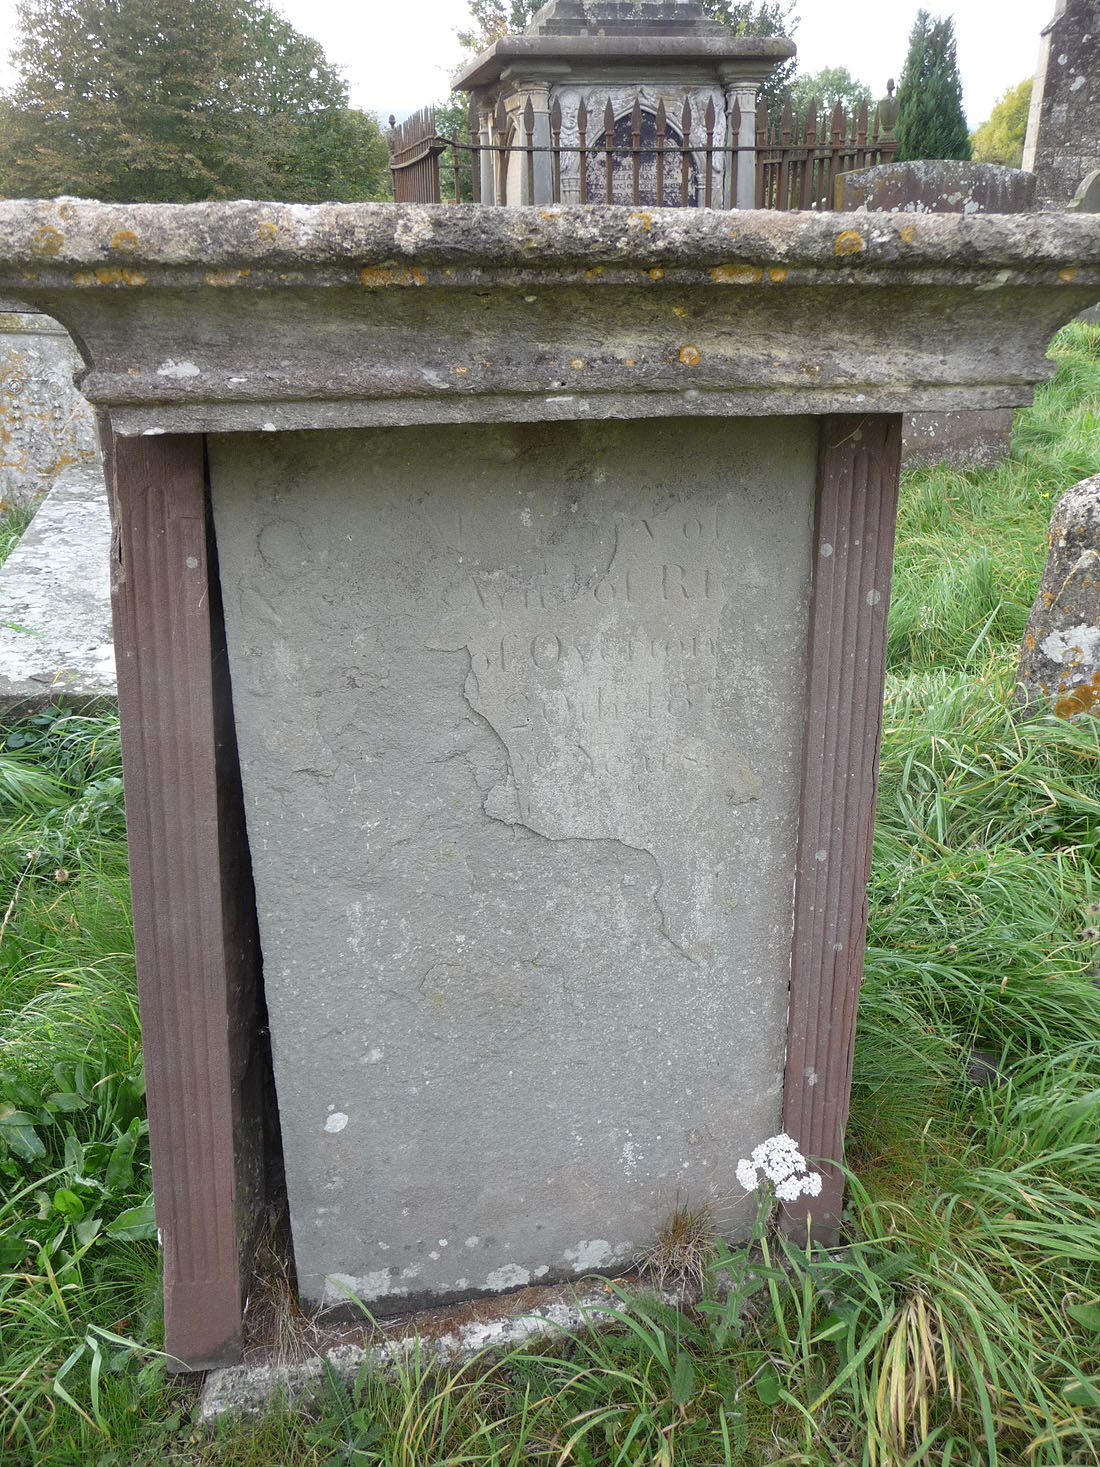 Ann Fryer's (nee Jones) inscription on the John Fryer & Mary KingTomb